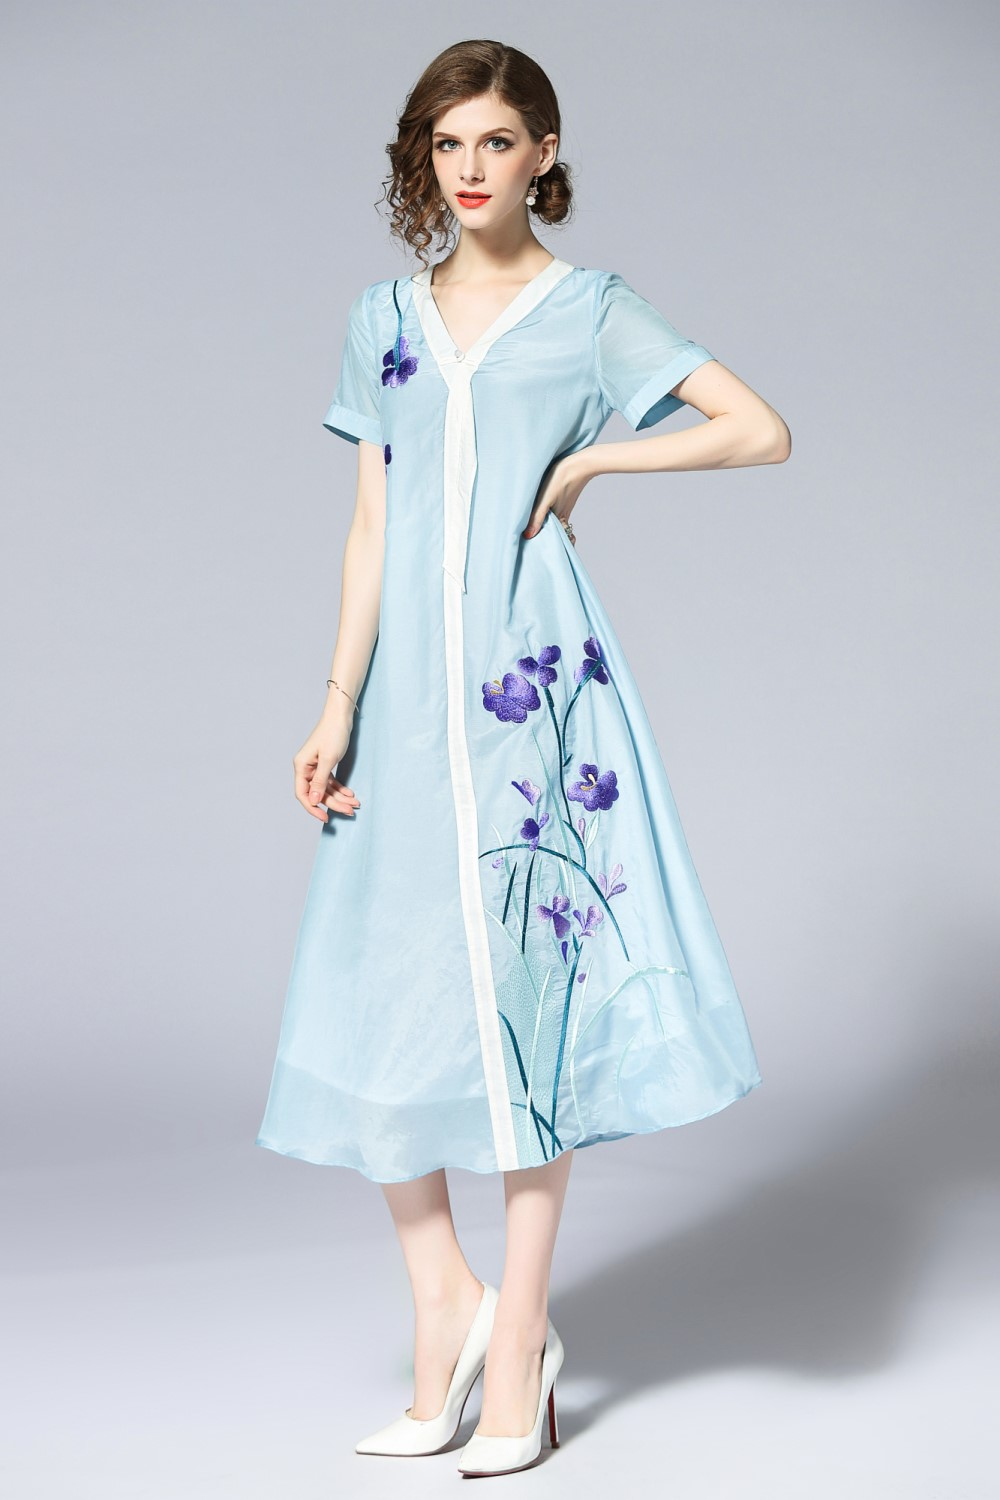 Free shipping Summer original design A Version Chinese style Hit color flower Embroidered big size dress for women - 3